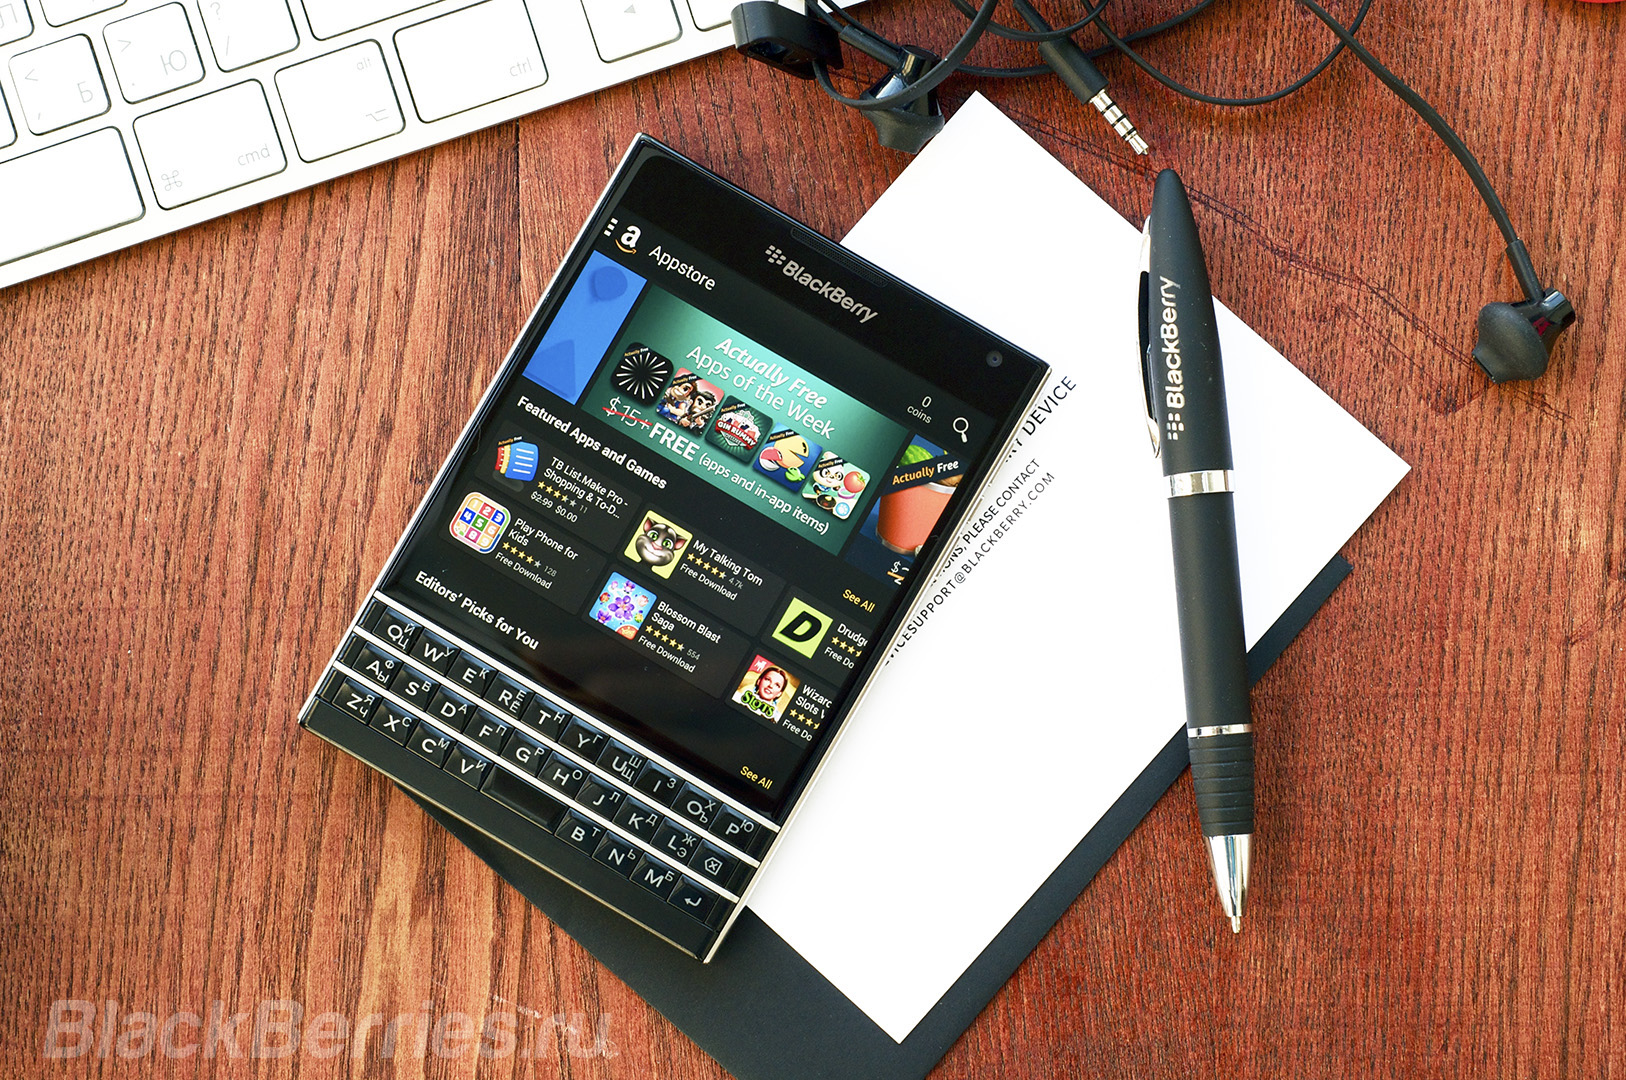 BlackBerry-Passport-Review-2016-34